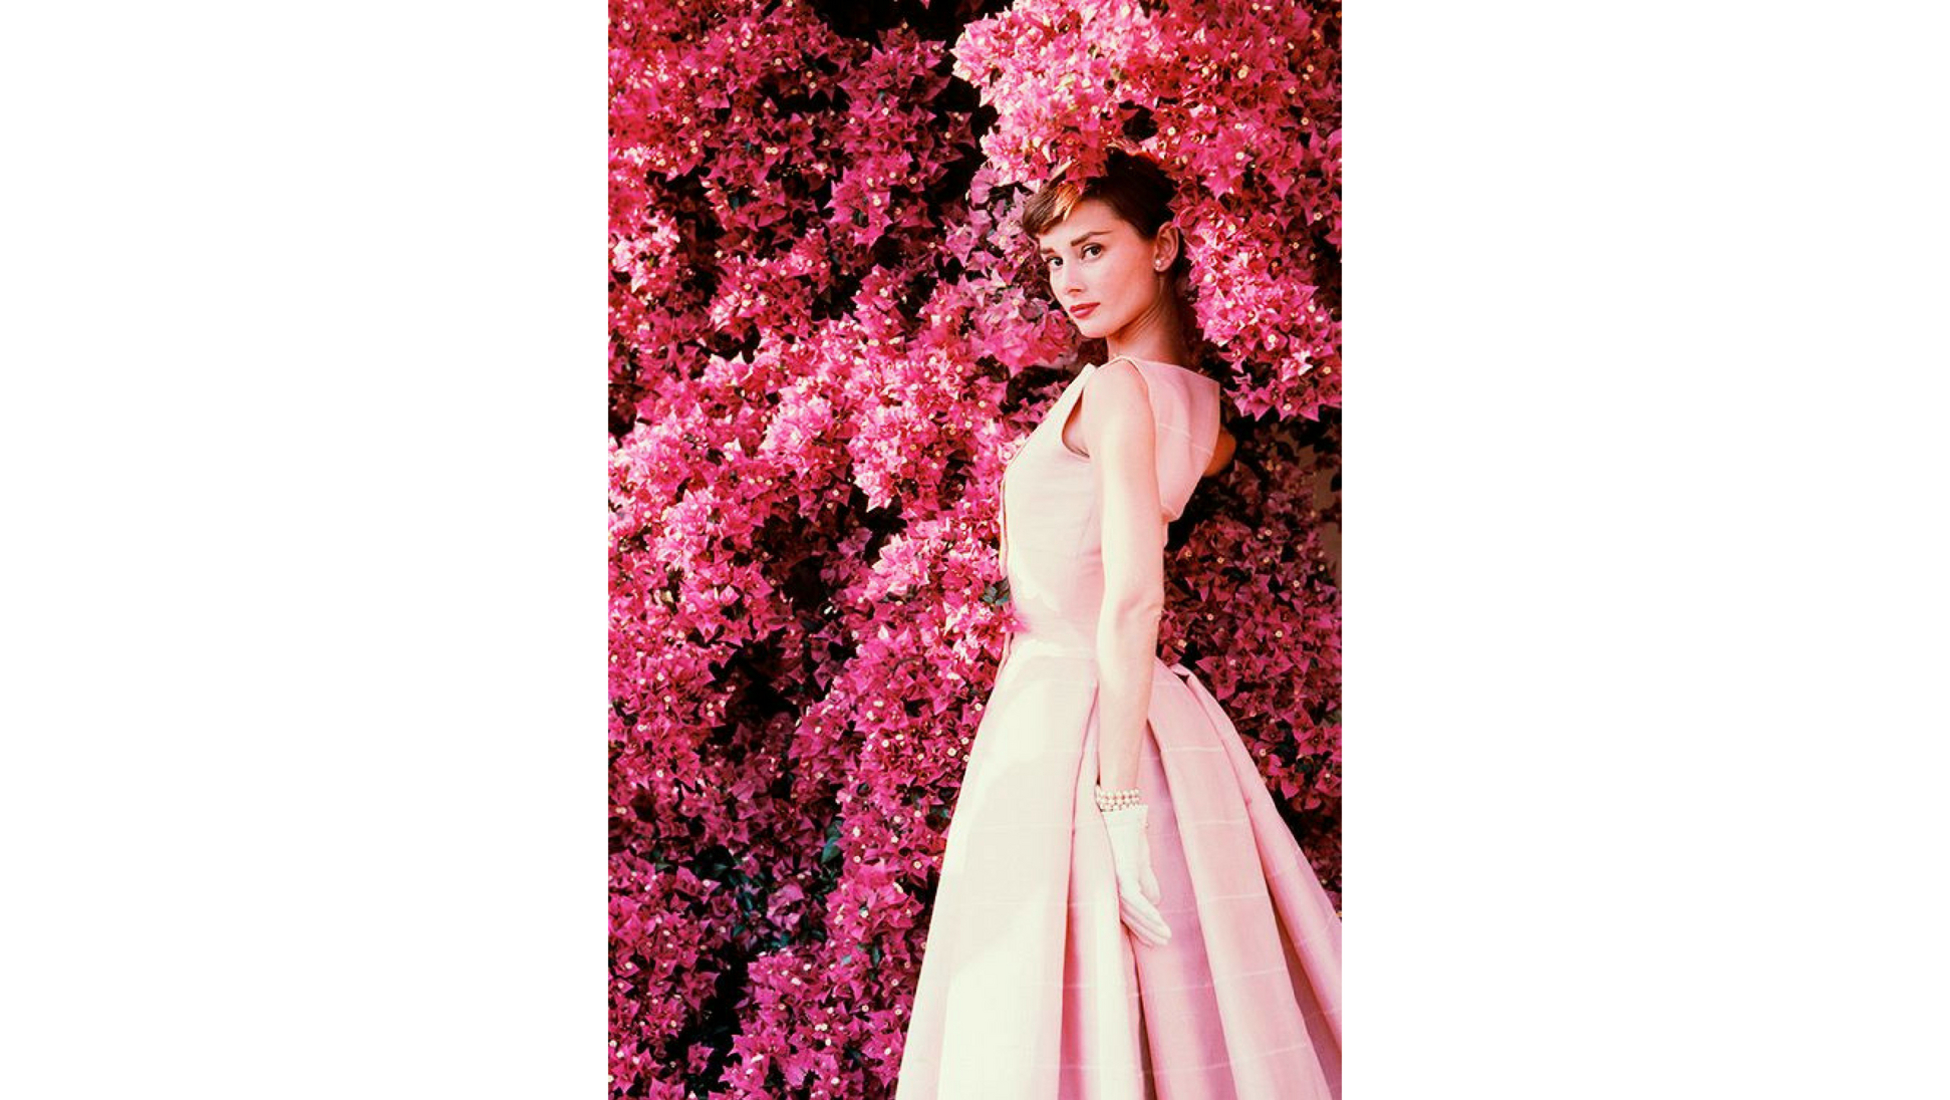 10 Facts You Didnt Know About Audrey Hepburn Catawiki